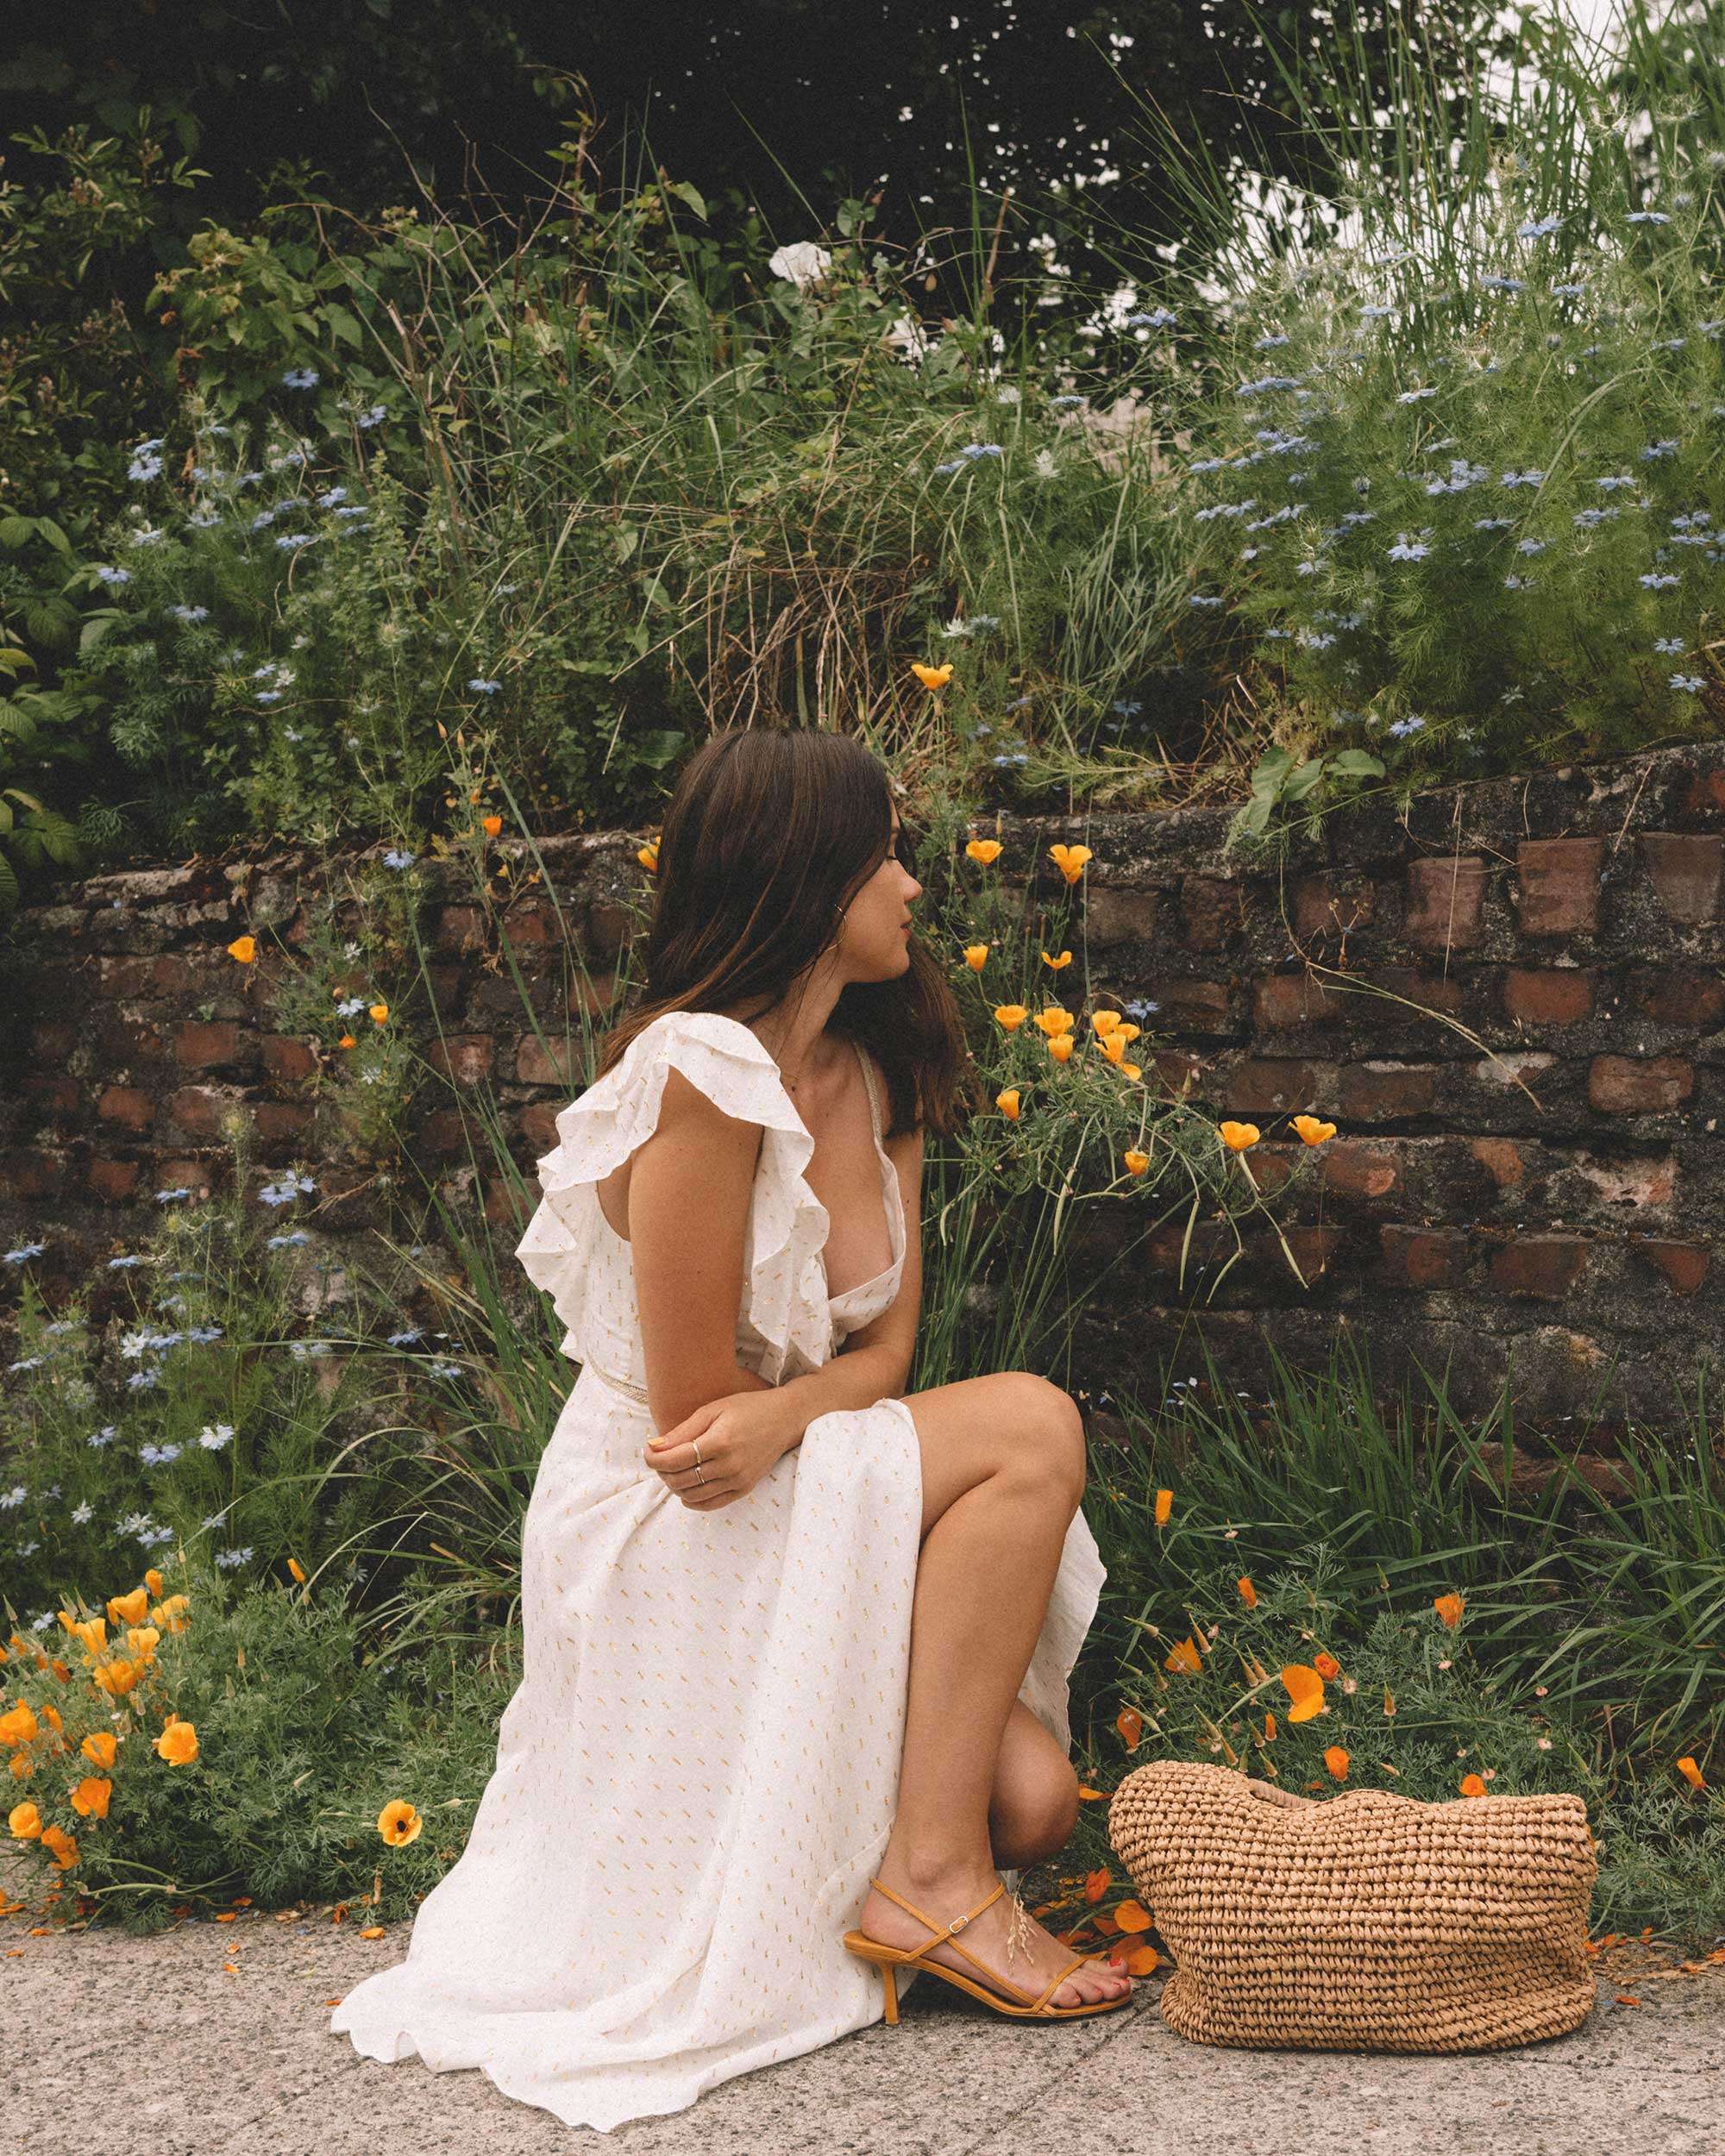 Sarah Butler of Sarah Styles Seattle wears BCBGMAXAZRIA White Asymmetric Midi Wrap Dress for the perfect summer outfit | @sarahchristine -11.jpg